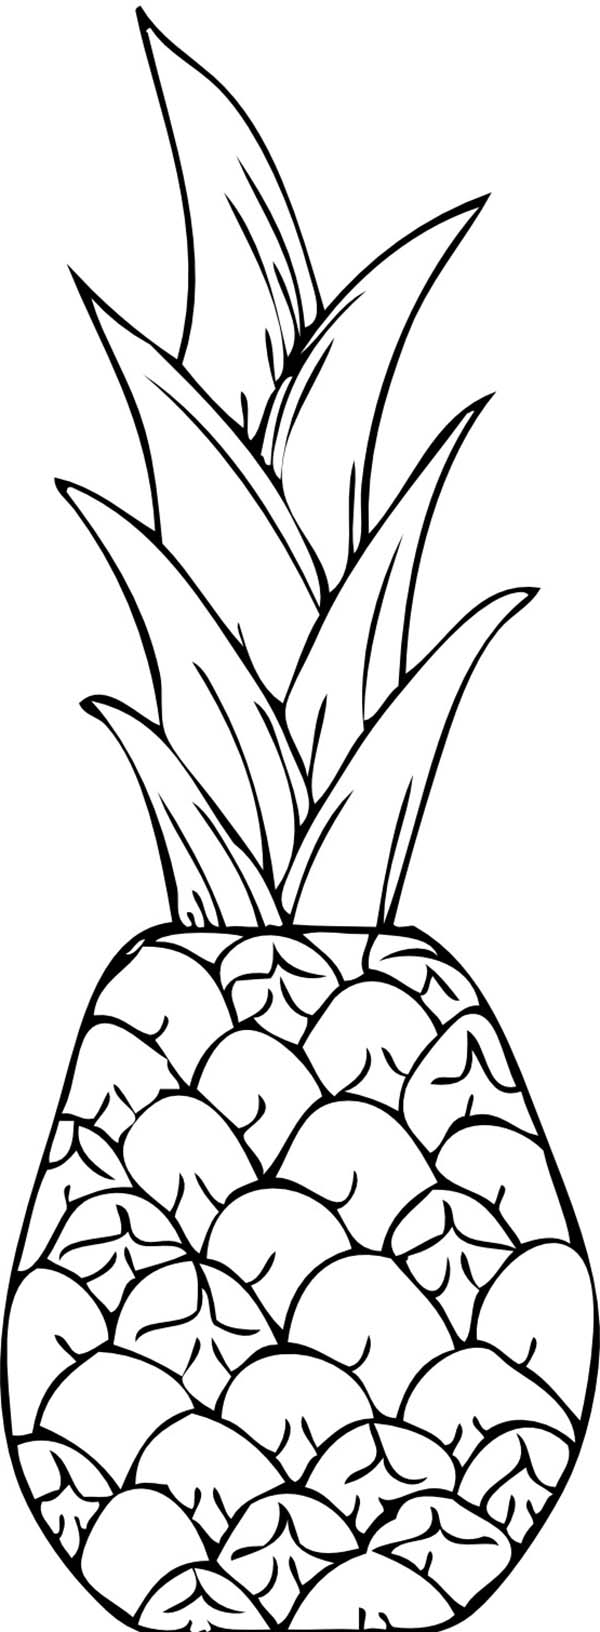 coloring pictures of pineapple pineapple coloring pages for kids coloringfile pictures of pineapple coloring